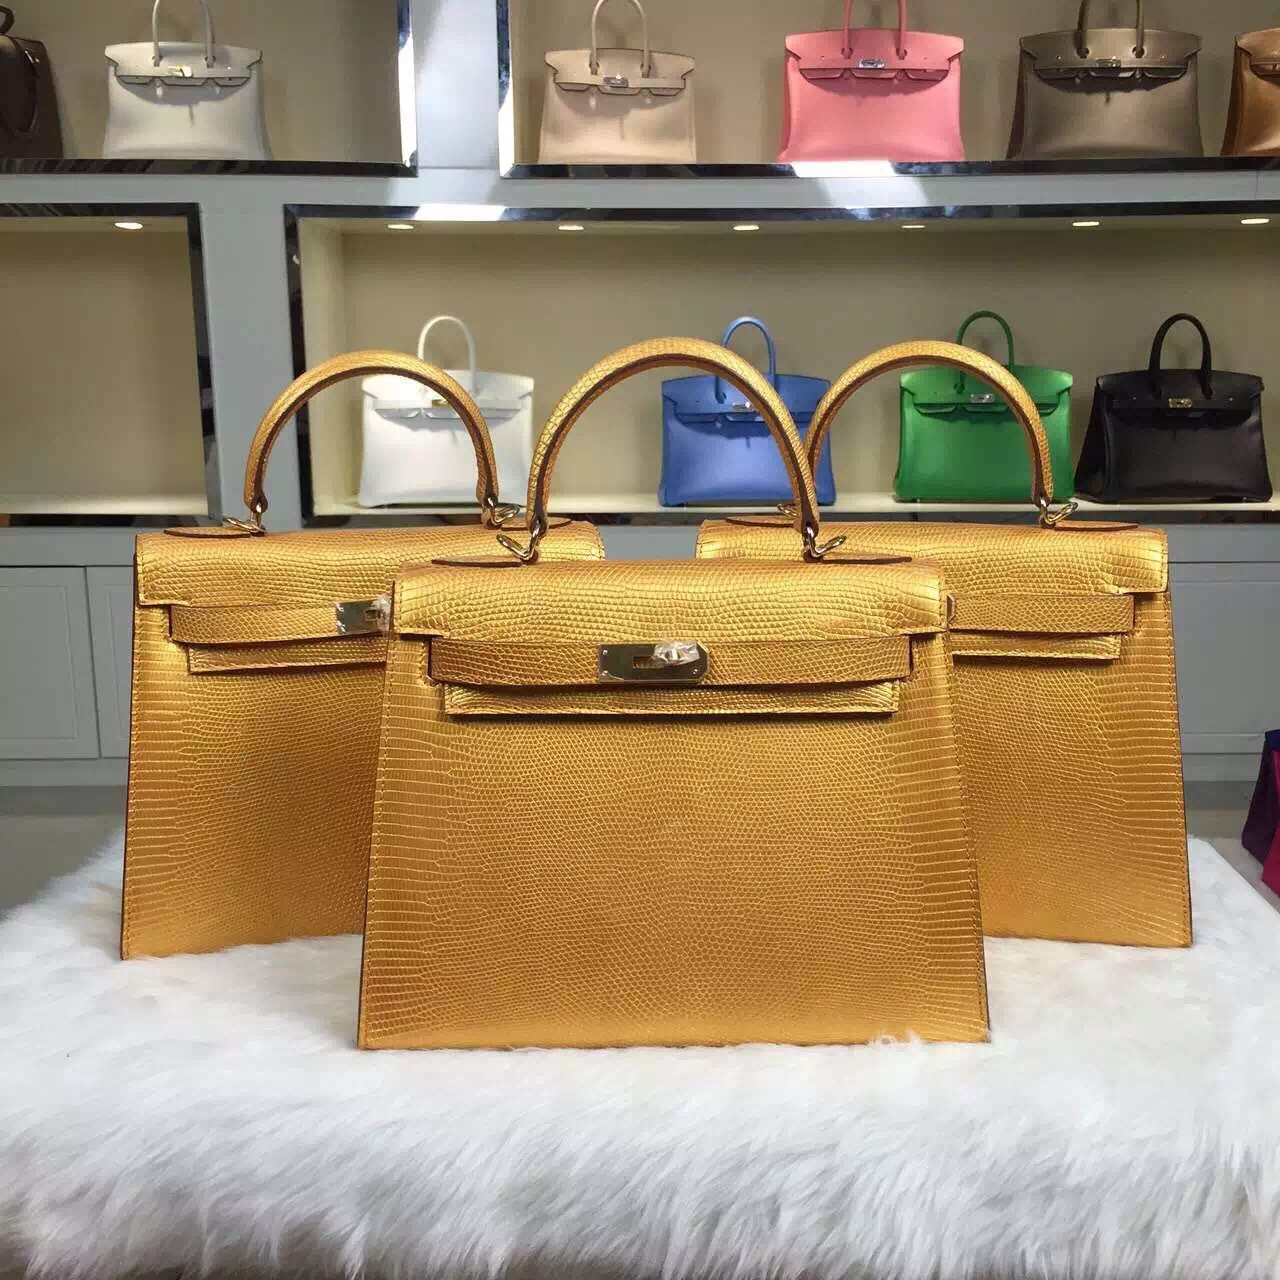 High Quality Hermes Kelly Bag Lizard Skin Leather Multi-color Women's Tote Bag